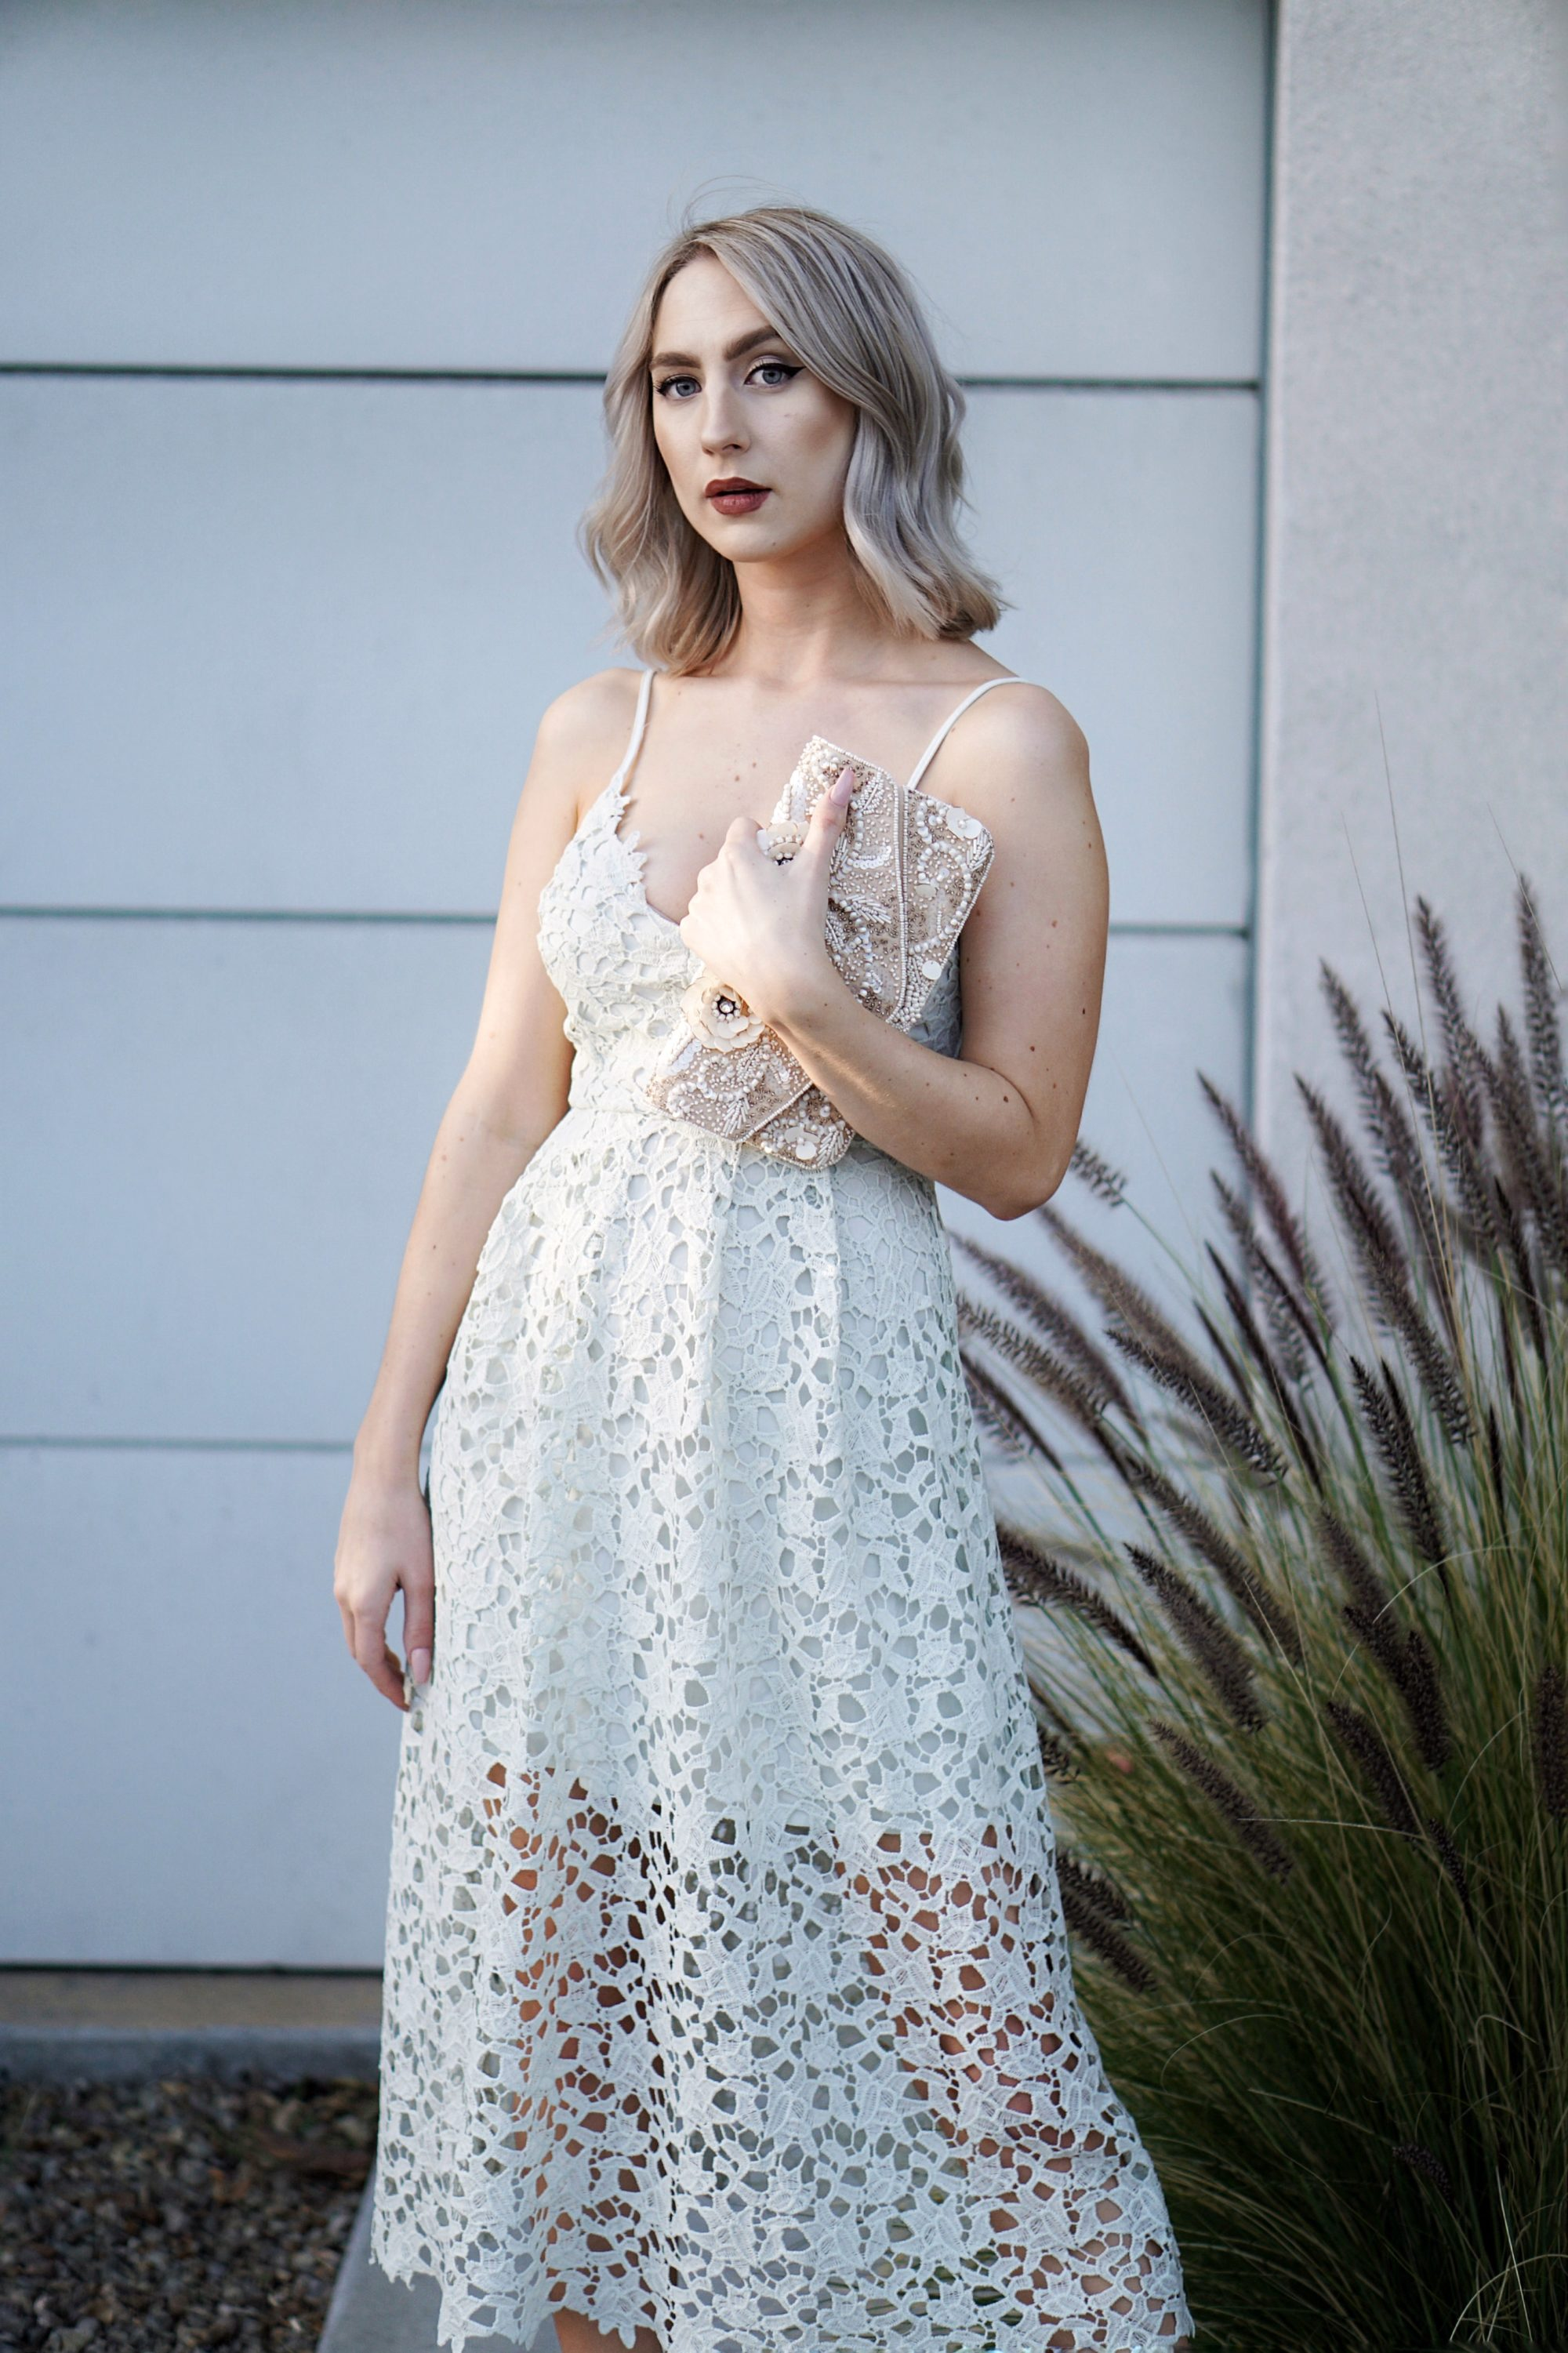 Spring/ Summer Wedding Guest Dresses Under $100 - Until The Very Trend